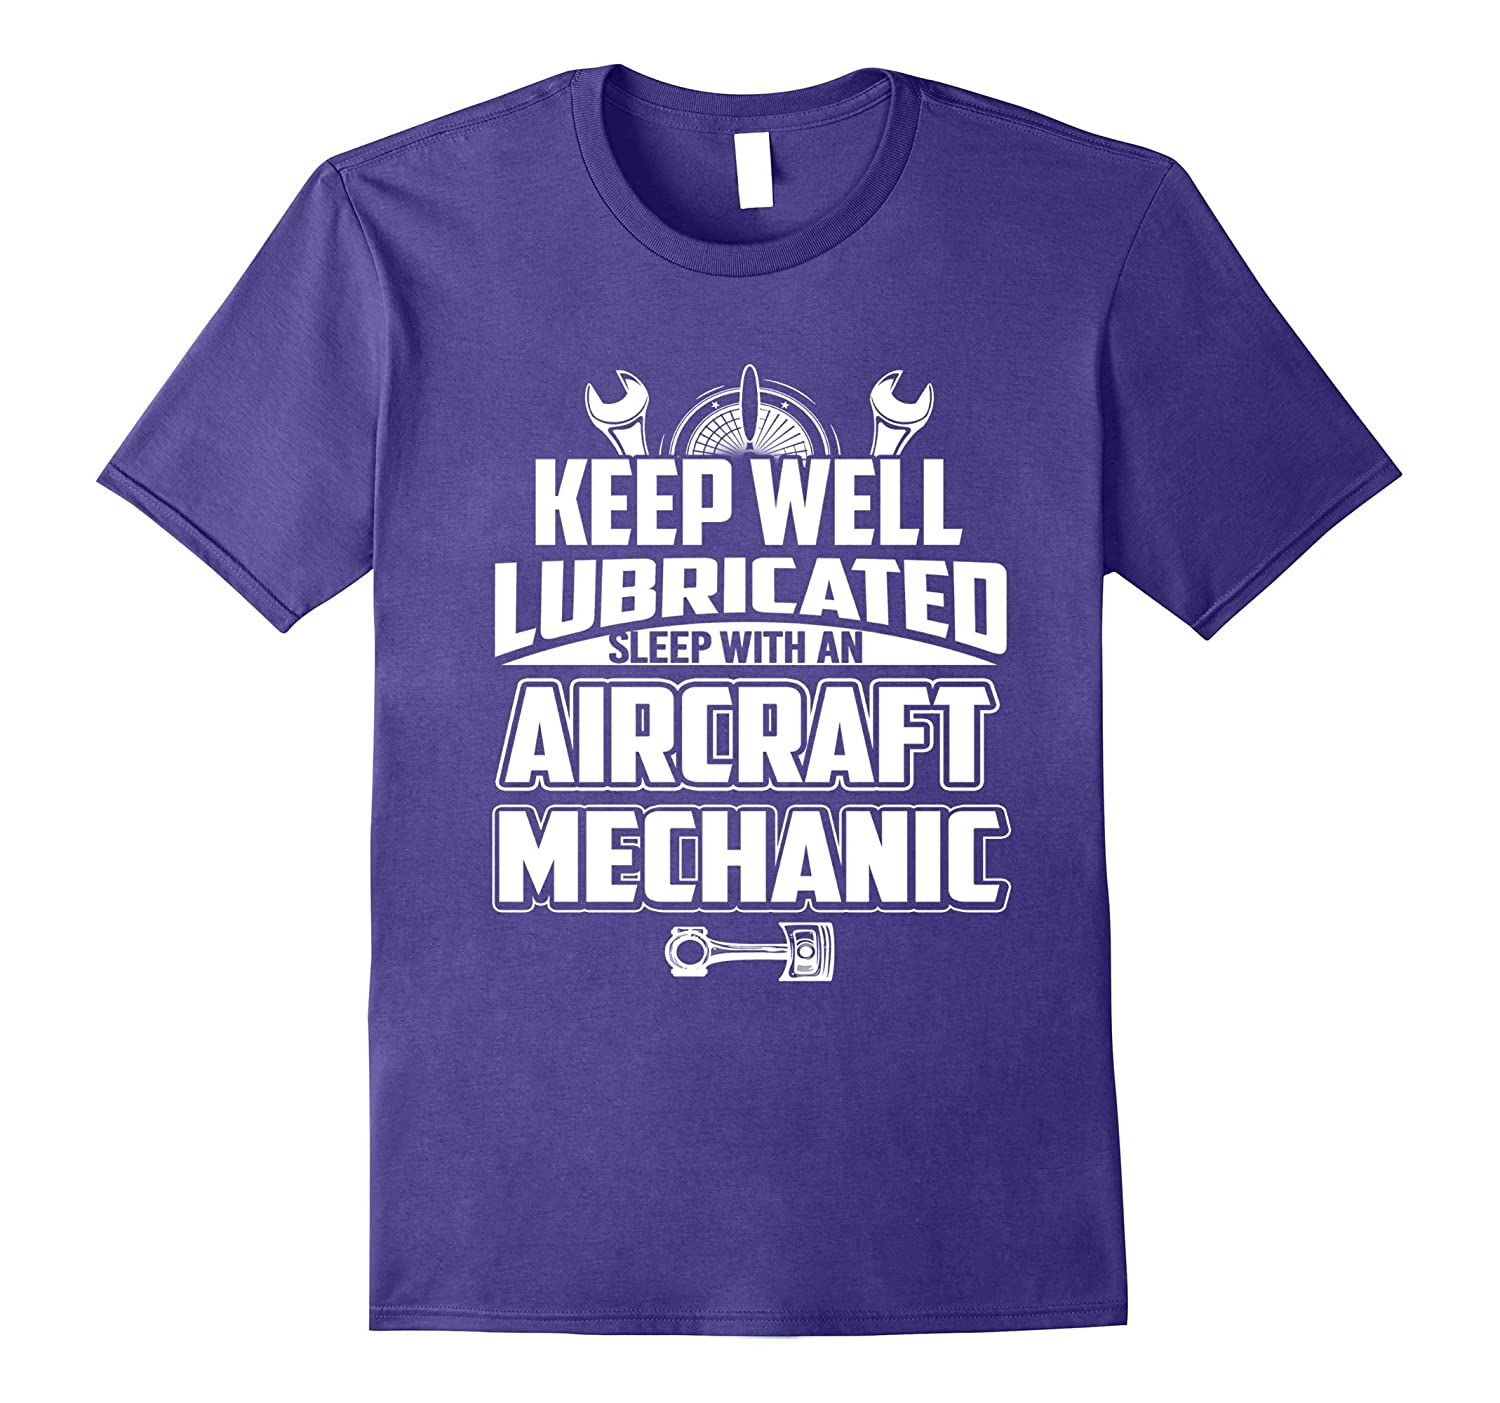 Aircraft mechanic keep well lubricated sleep-T-Shirt